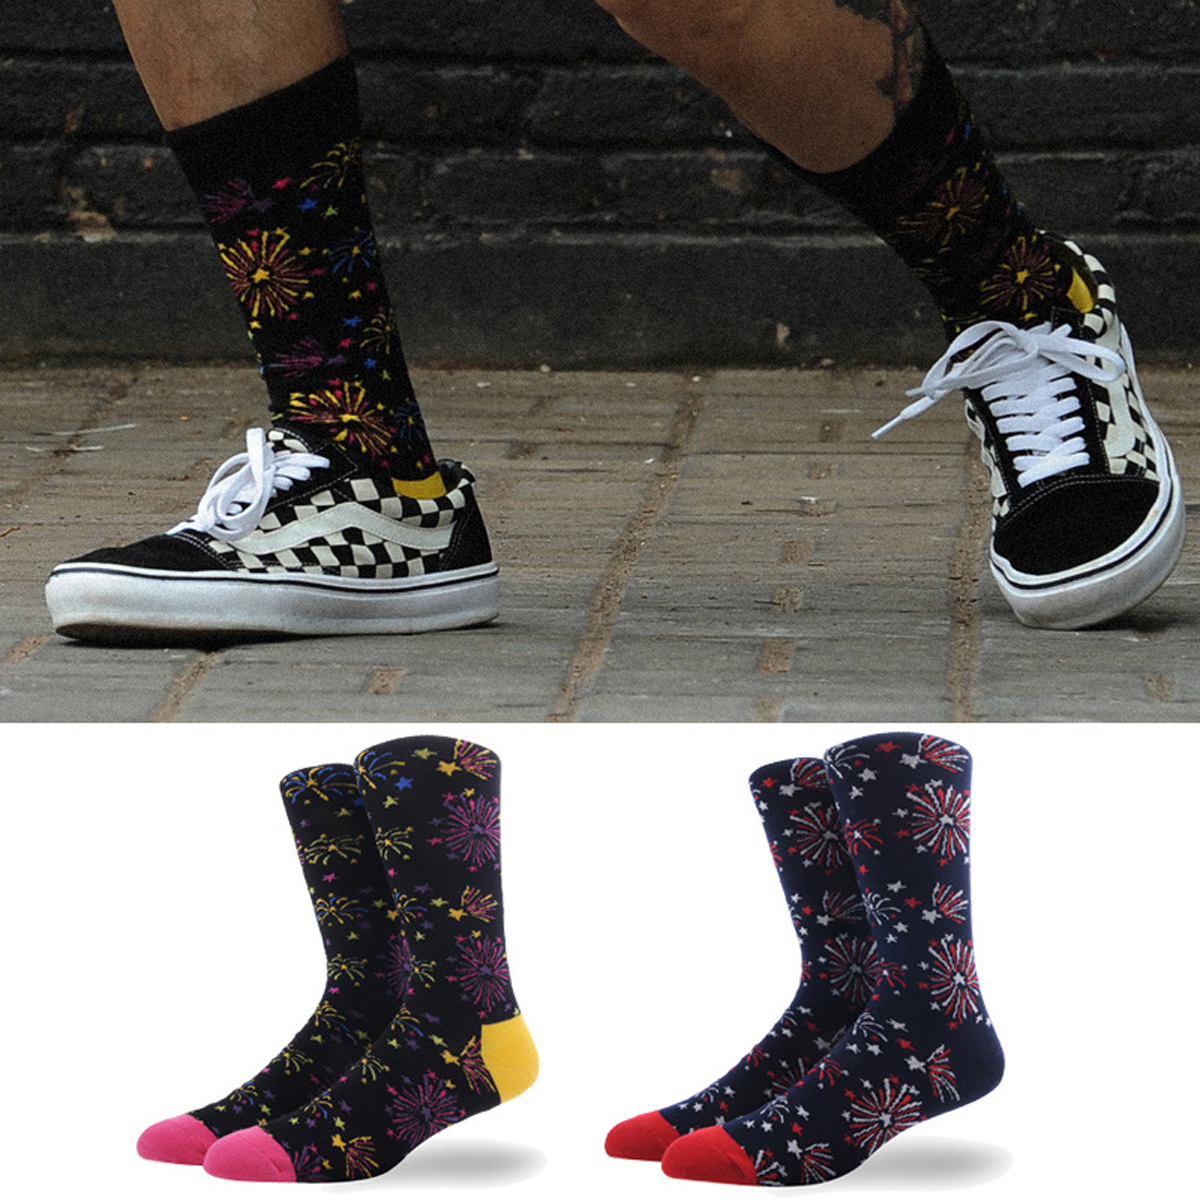 Creative New Men Socks Fireworks Novelty Happy Socks Cotton Harajuku Funny Hip Hop Socks Mens Weed Socks